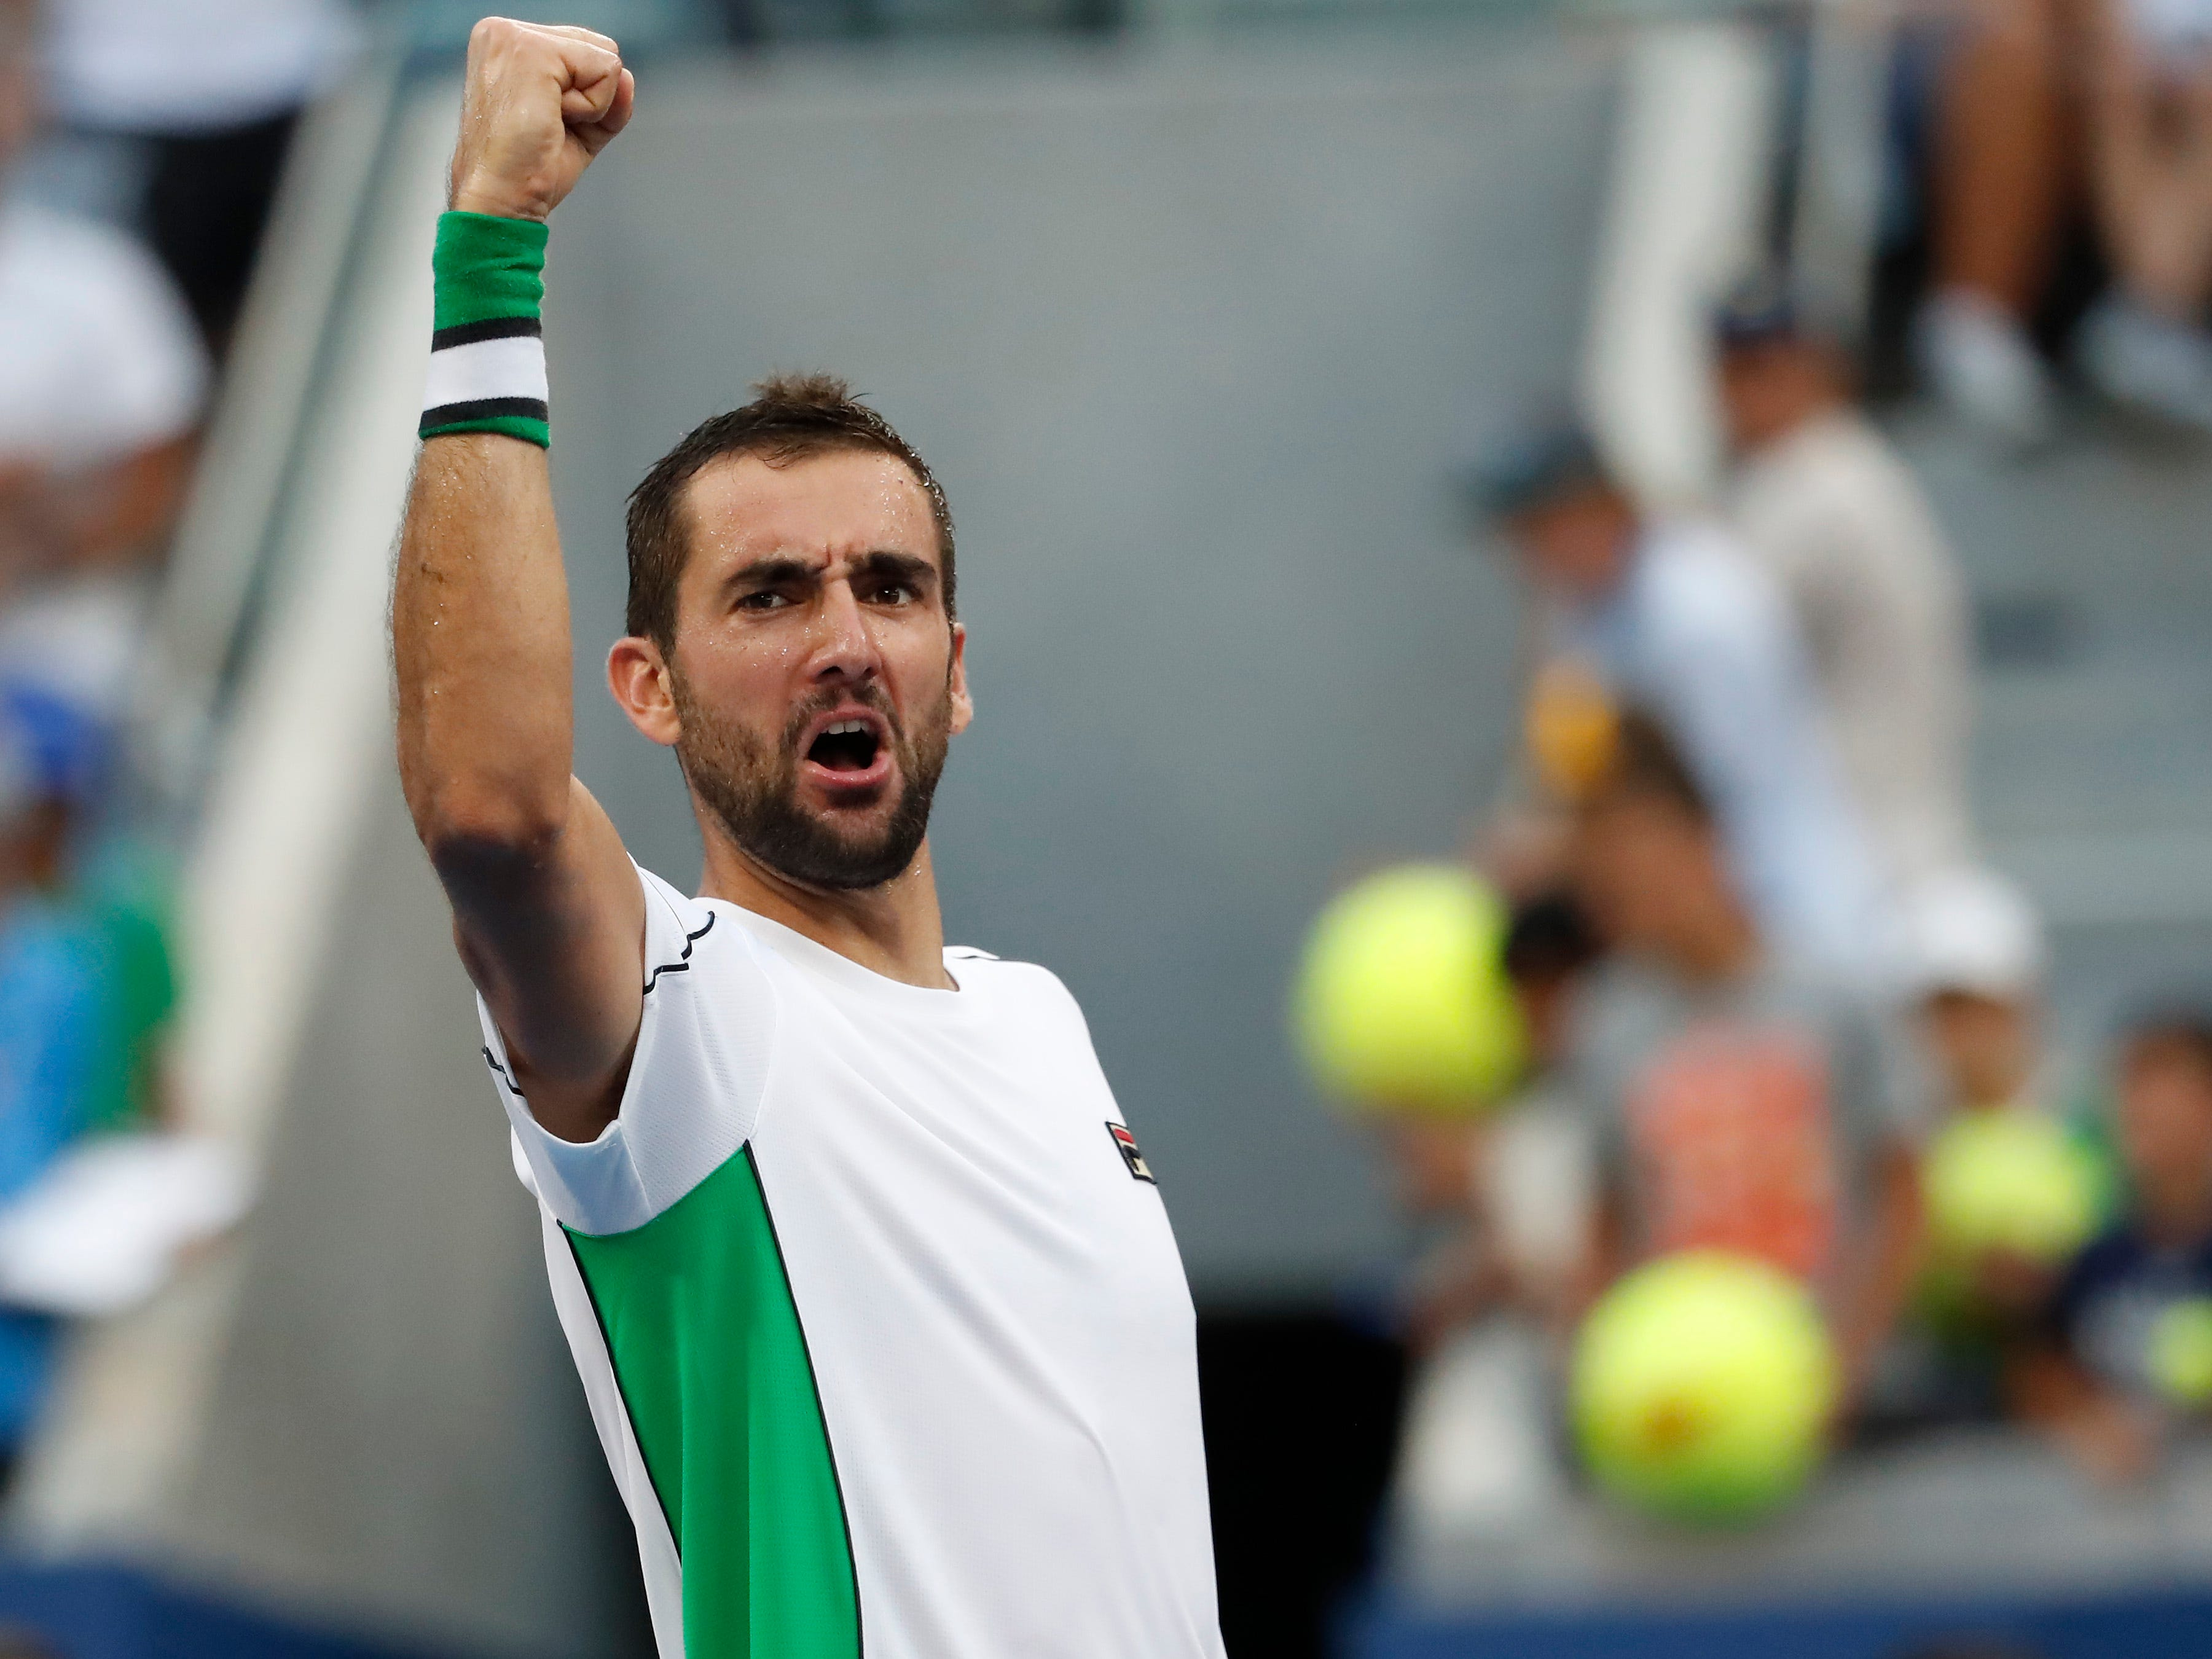 Croatia's Marin Cilic, the No. 7 seed and 2014 US Open champion, salutes the crowd after his fourth-round win against No. 10 seed David Goffin of Belgium.